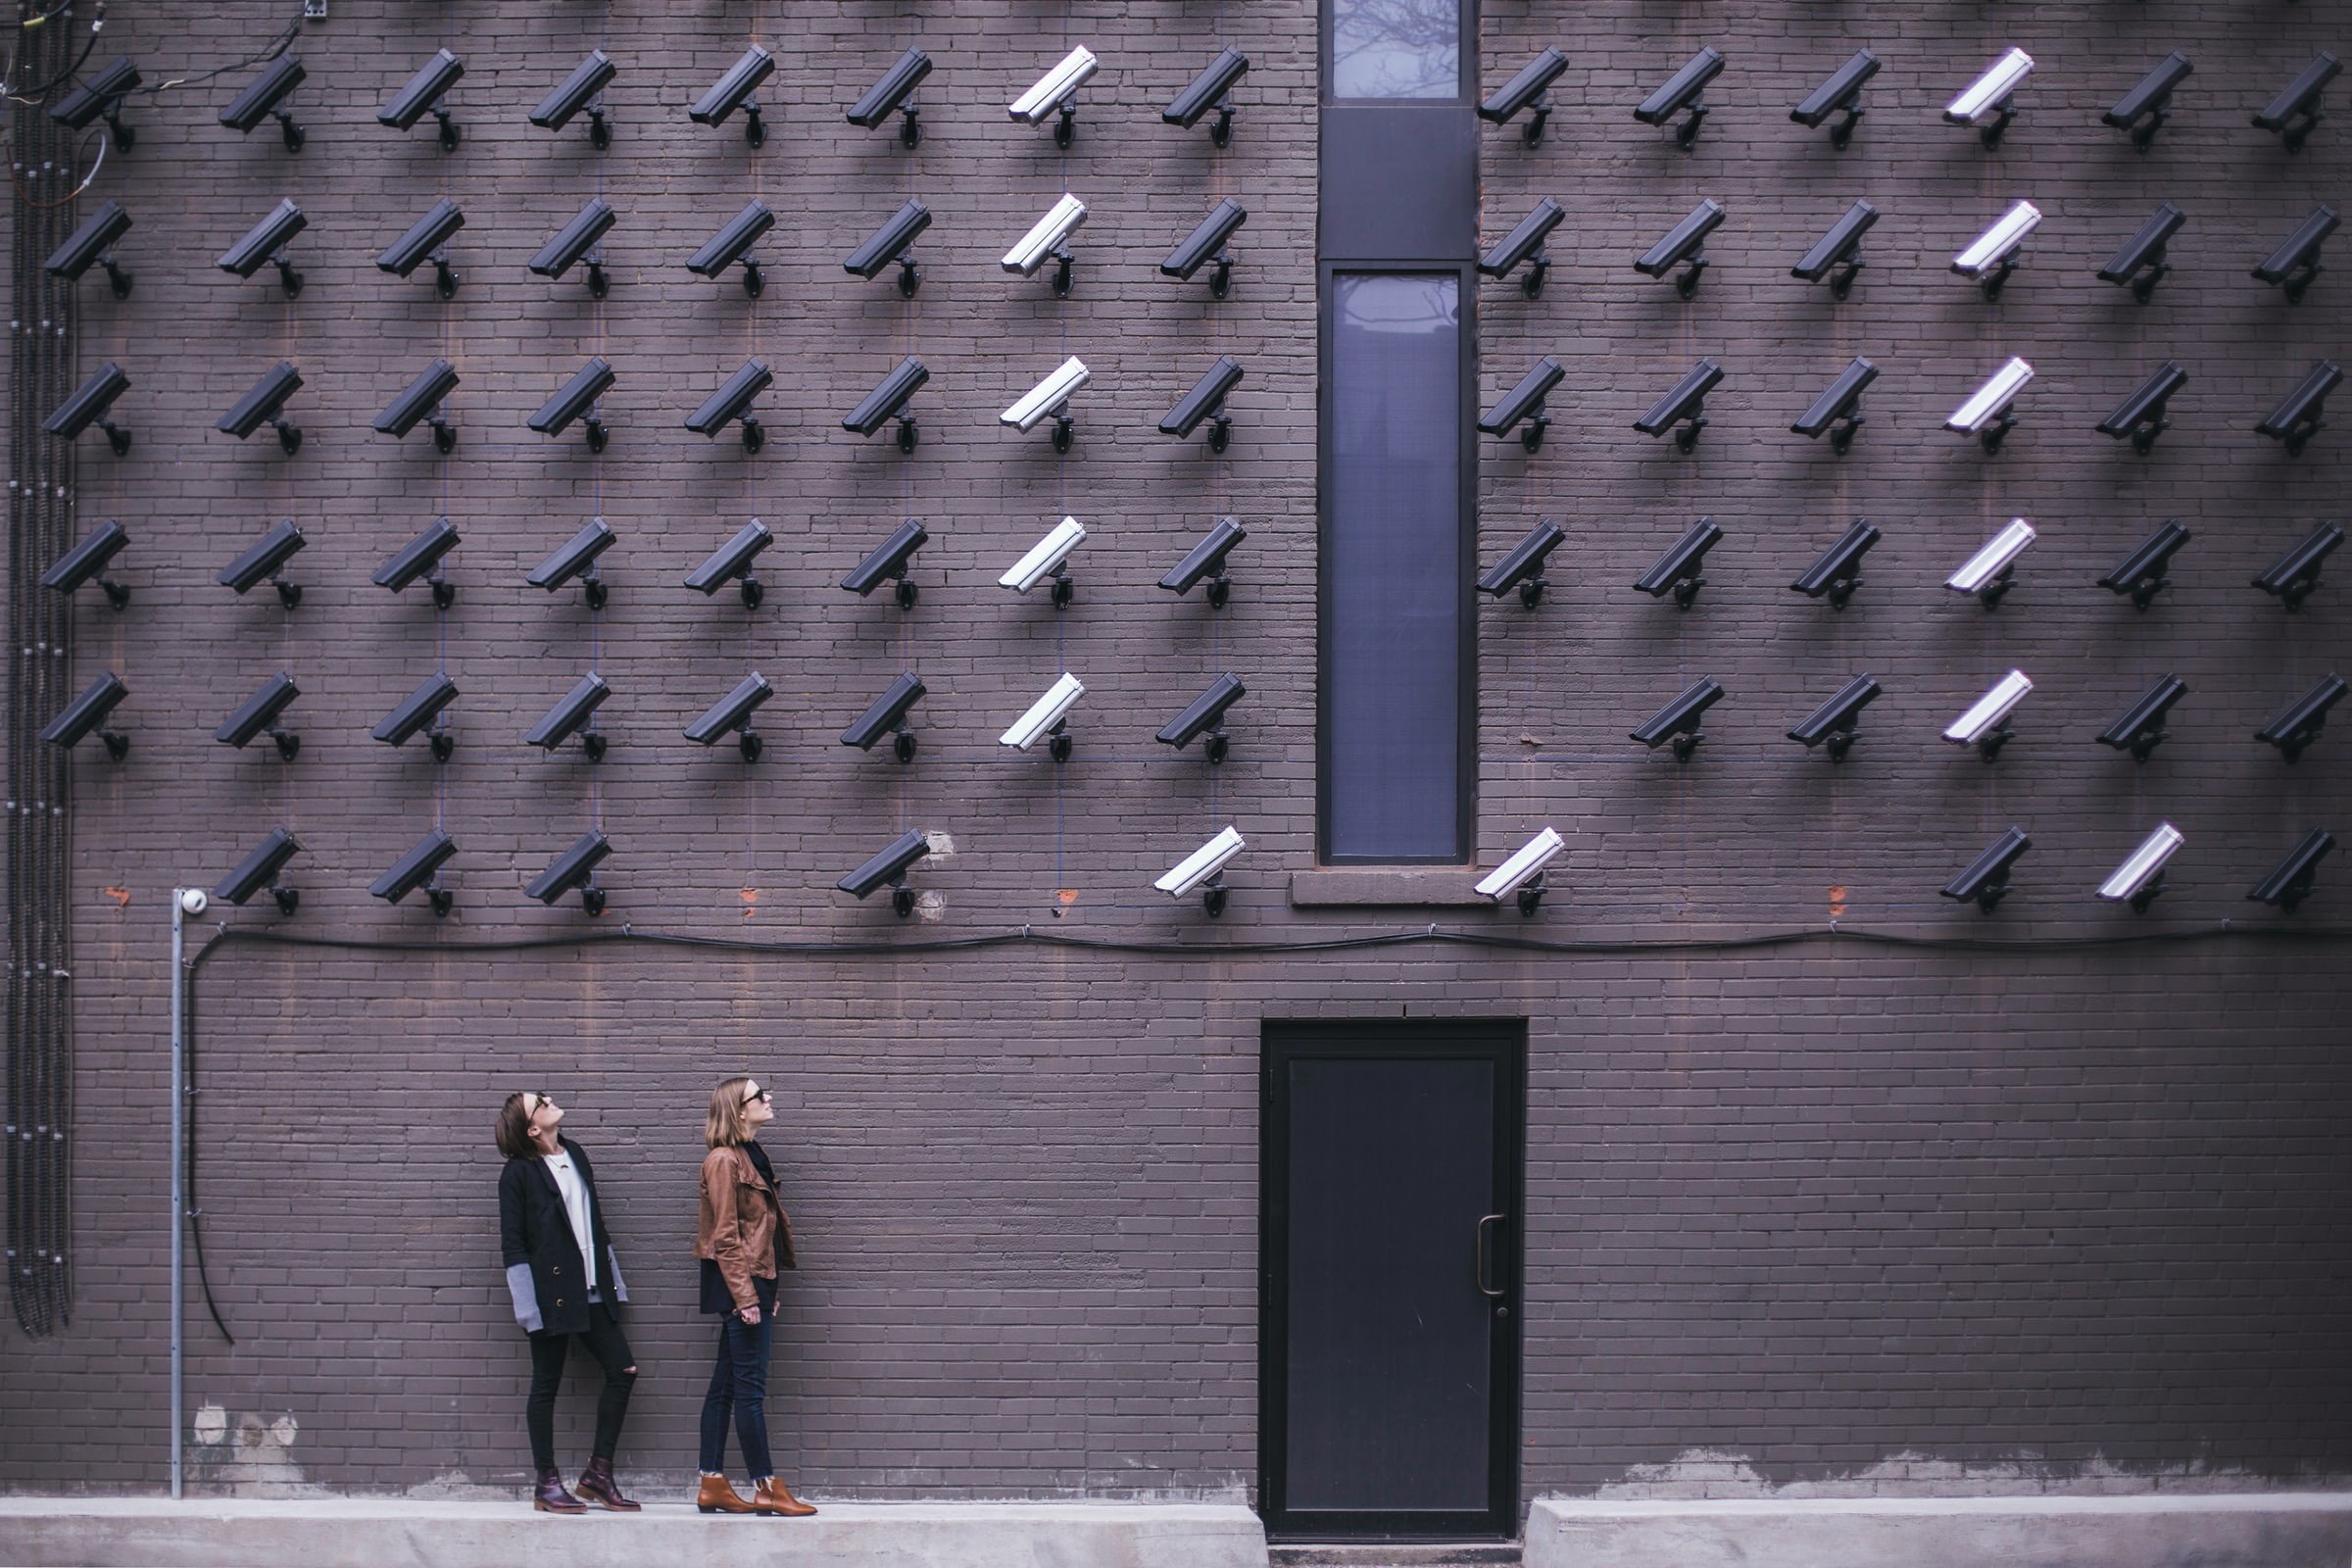 Two women looking at security cameras